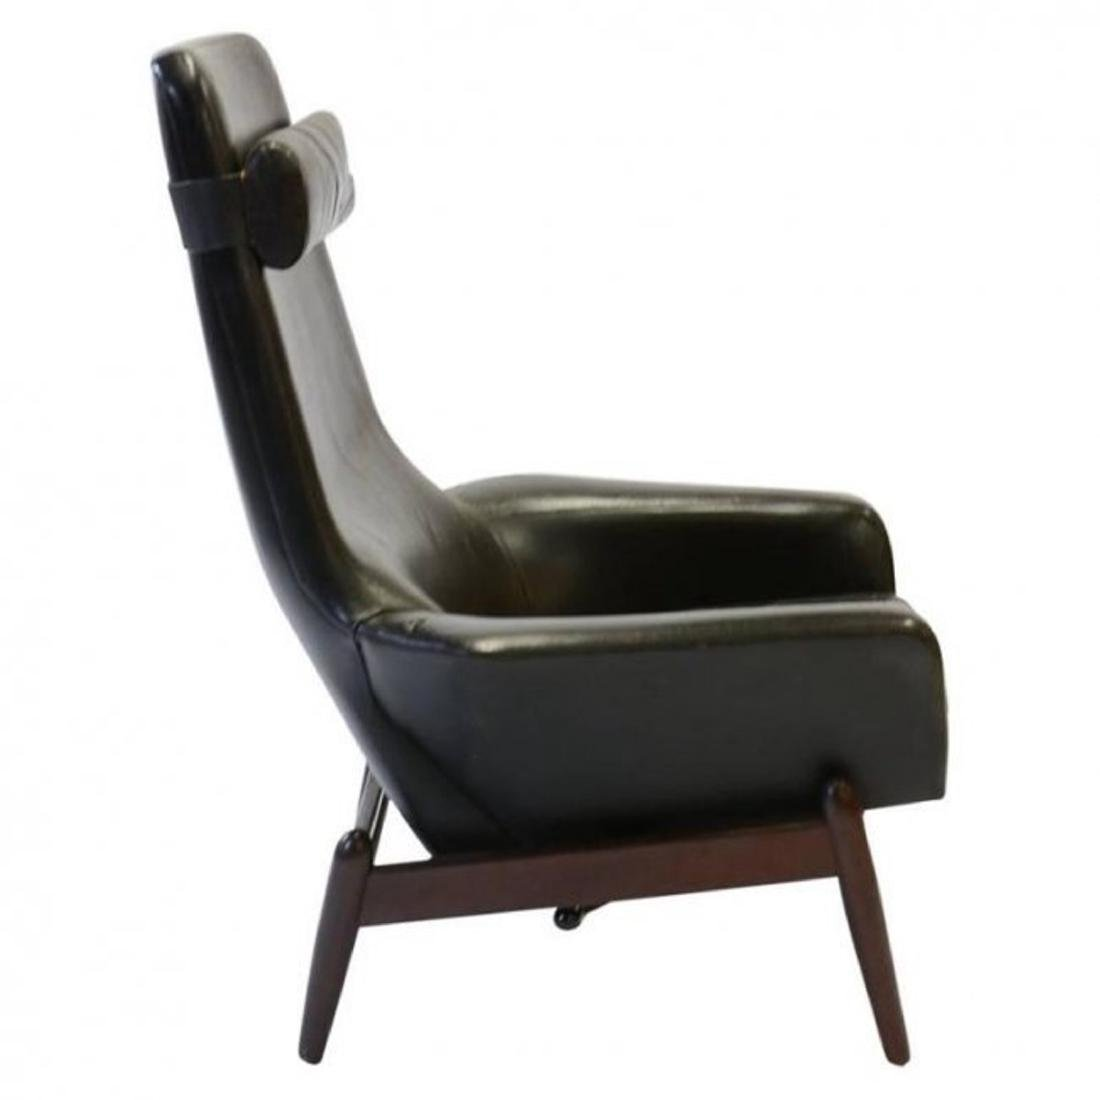 Ib Kofod-Larsen PD 30 Reclining Club Chair